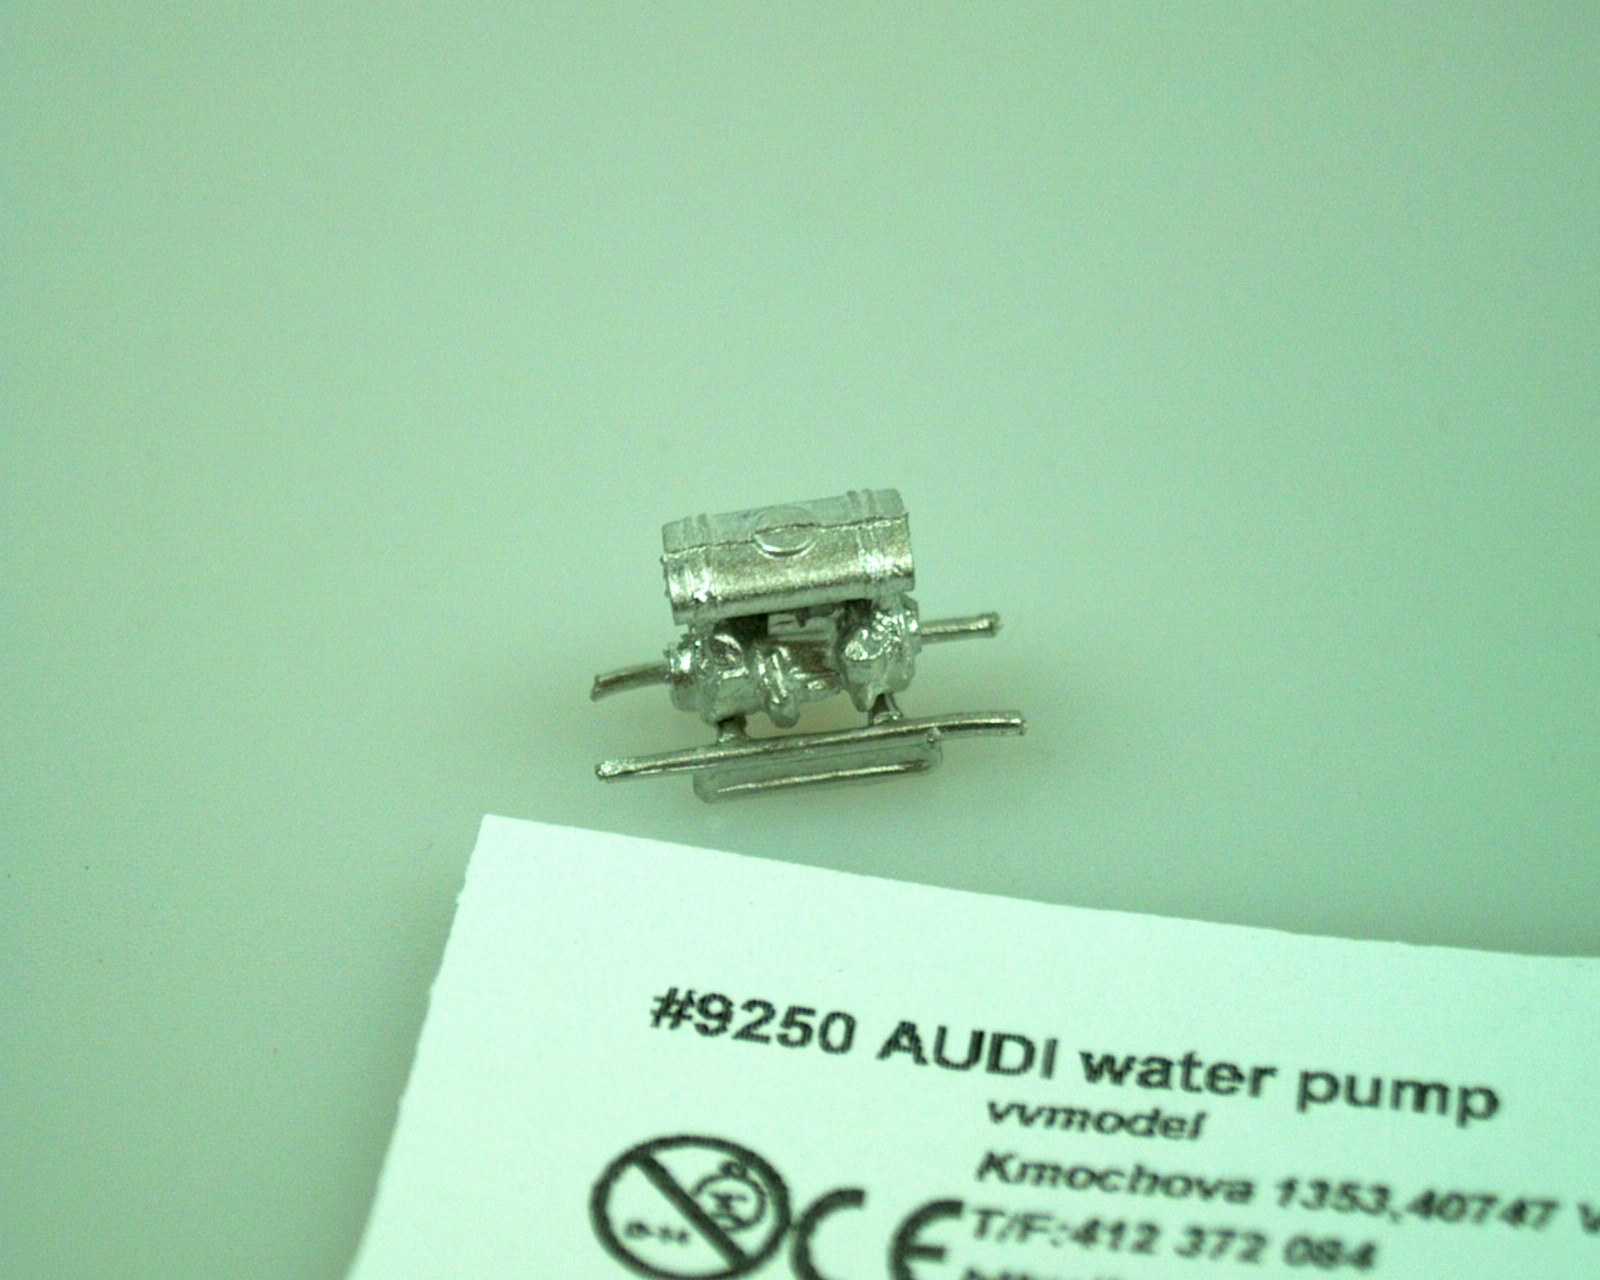 AUDI water pump (for Garant, Robur, S4000, H6 fire trucks)